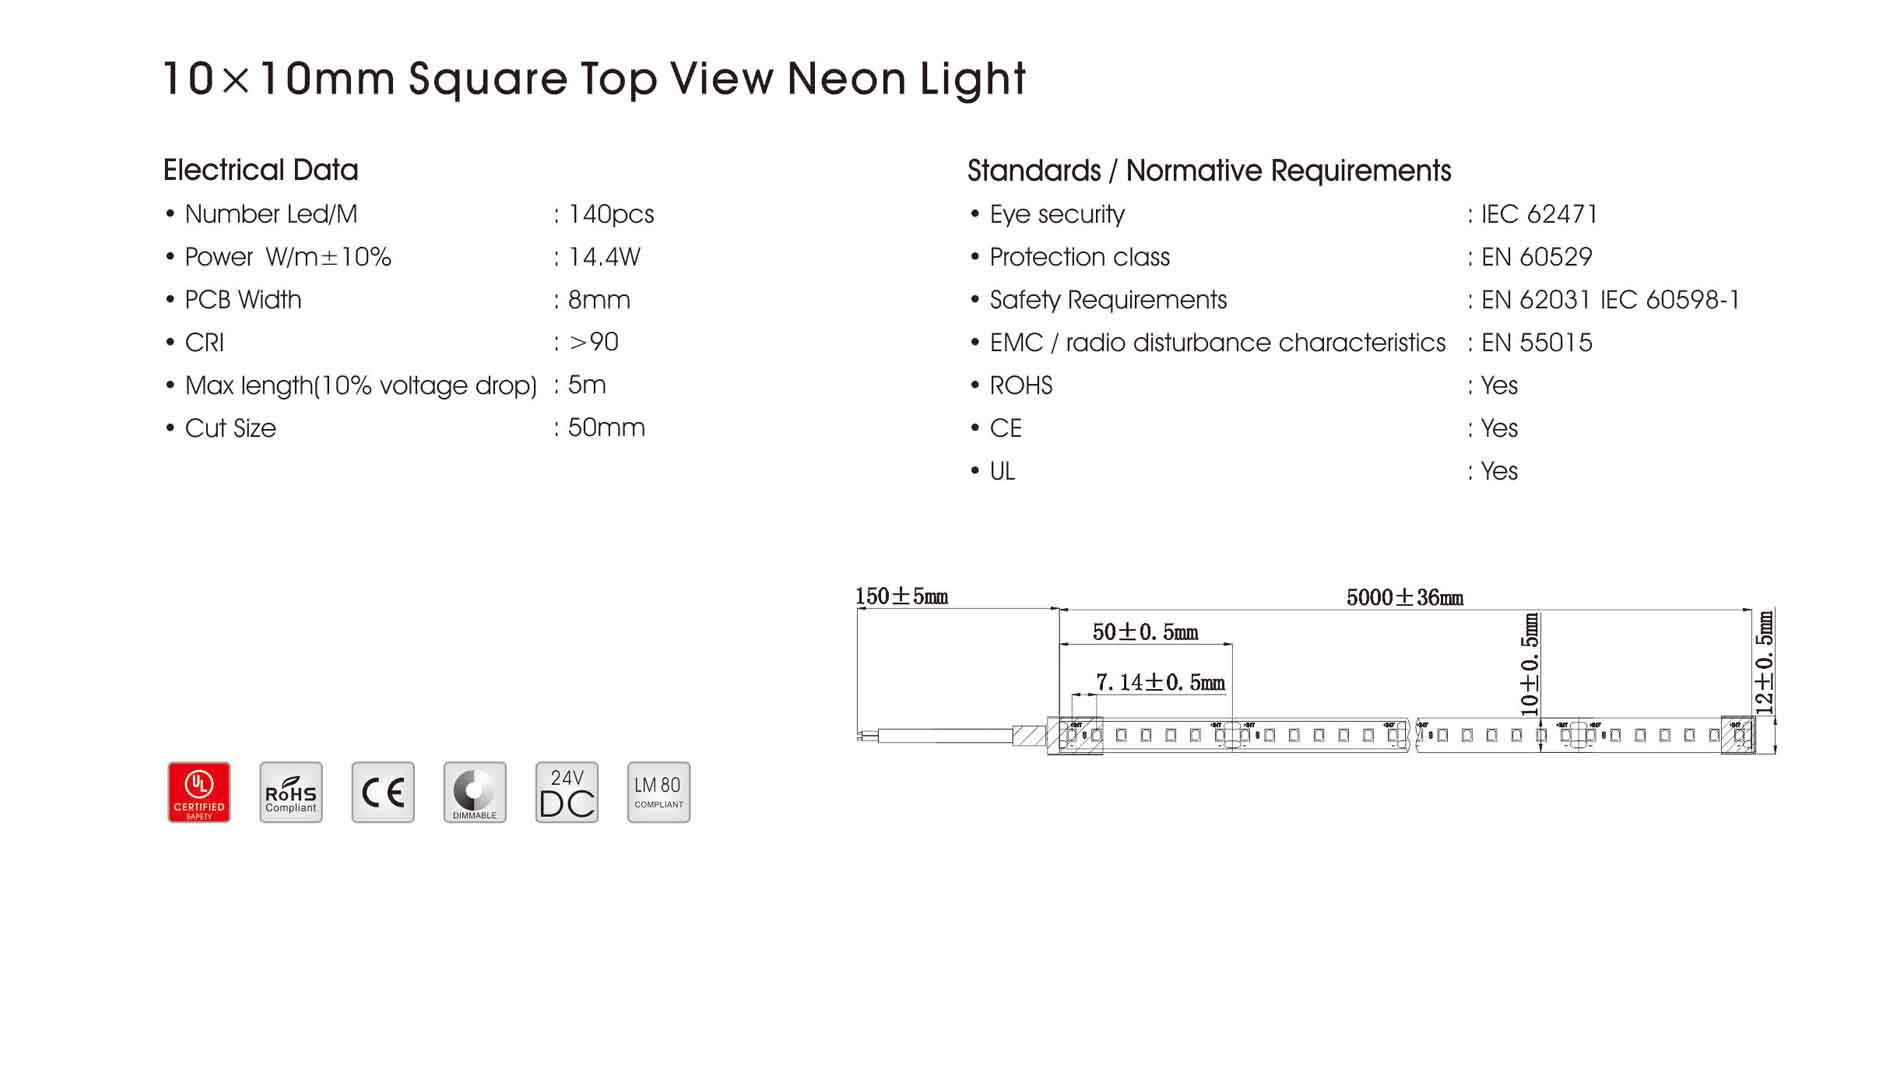 10x10mm square top view neon light